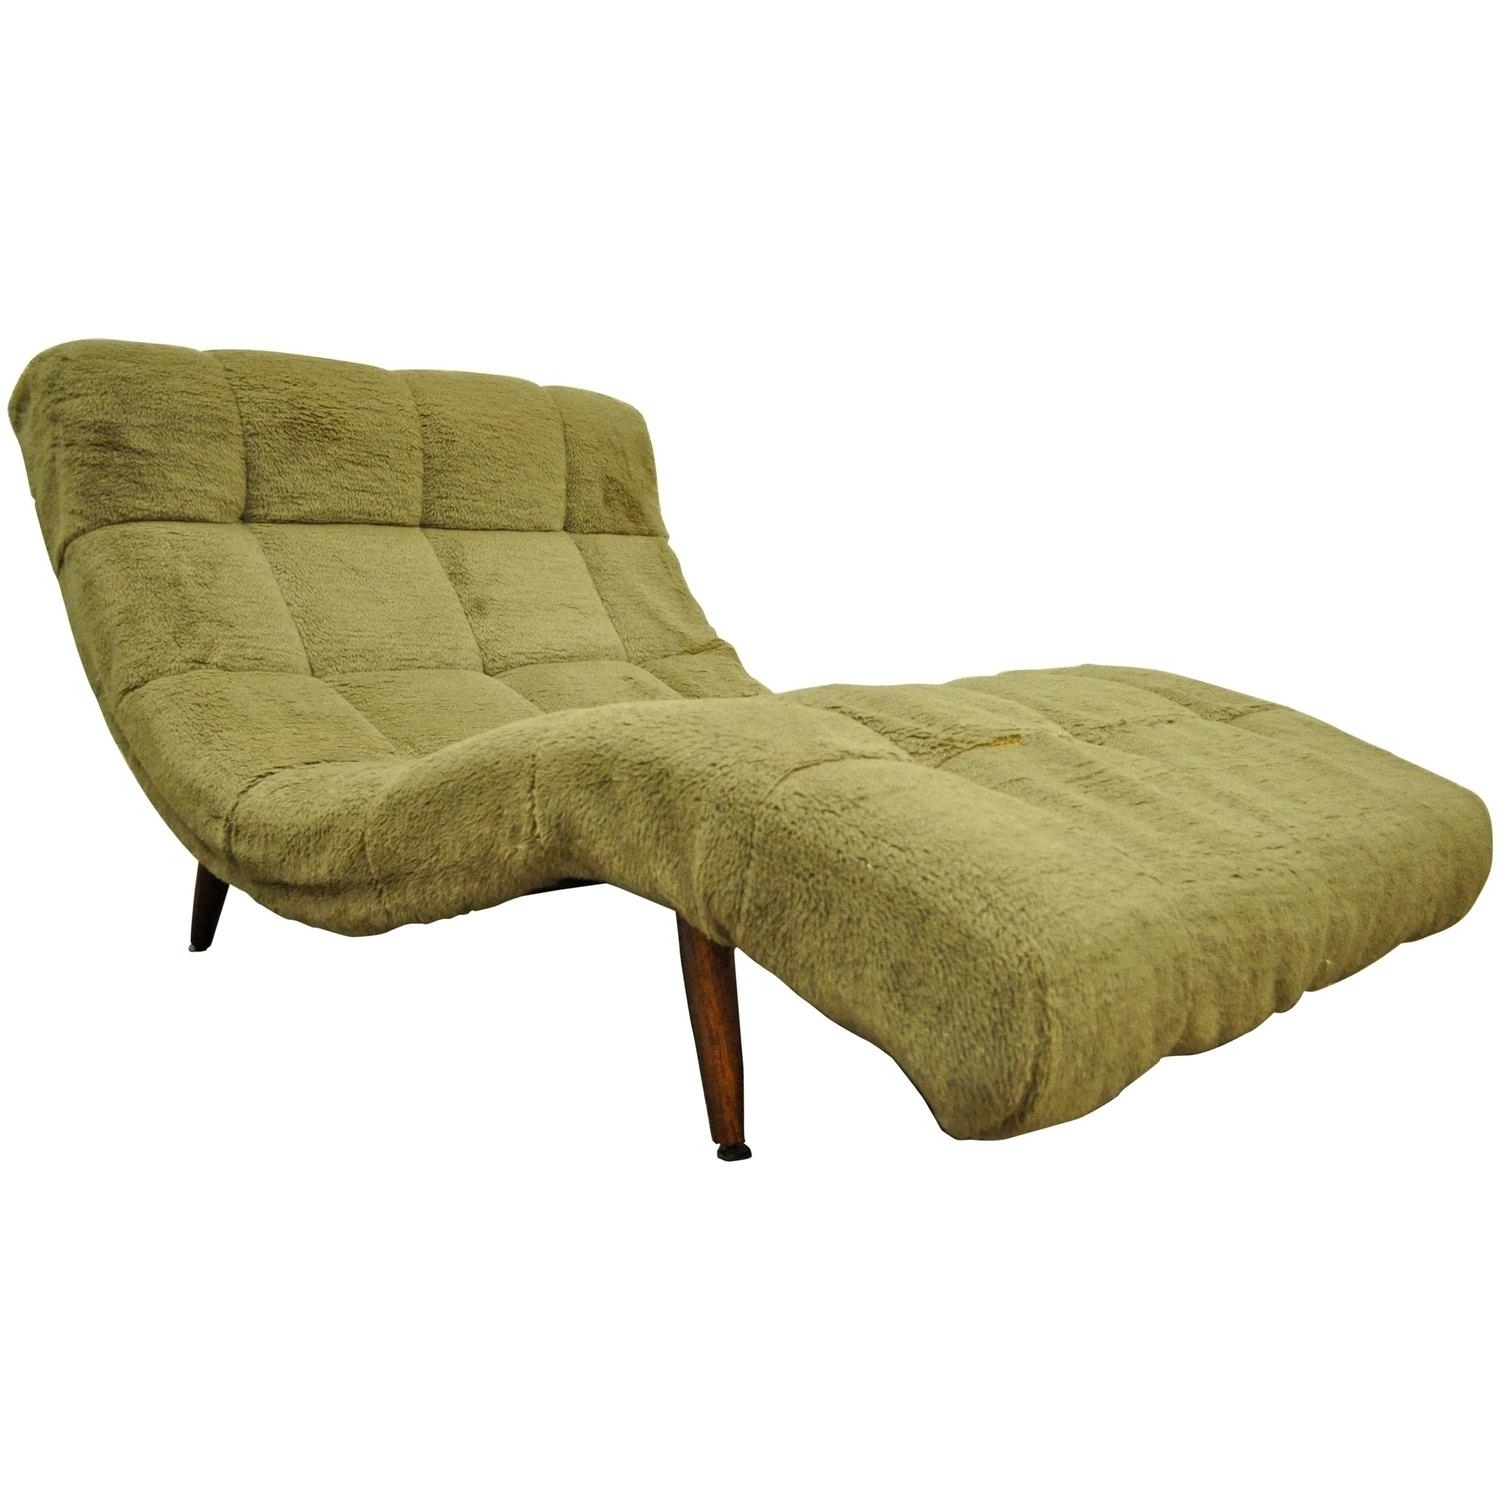 Most Up To Date High Quality Chaise Lounge Chairs Pertaining To Home Design : 81 Appealing Modern Chaise Lounge Chairss (View 11 of 15)